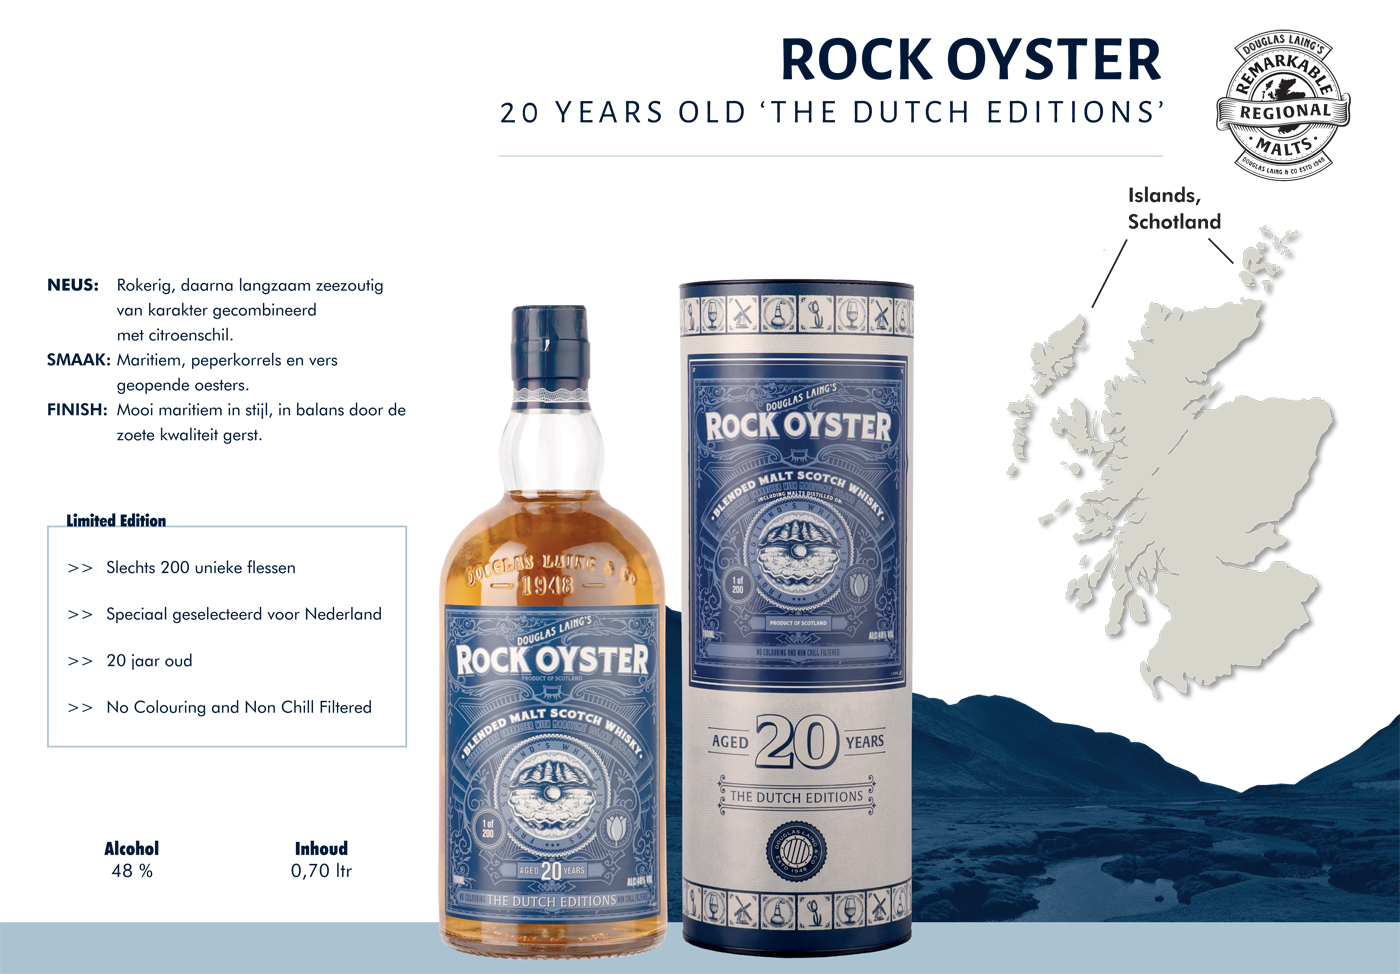 Rock Oyster 20 Years Old The Dutch Editions